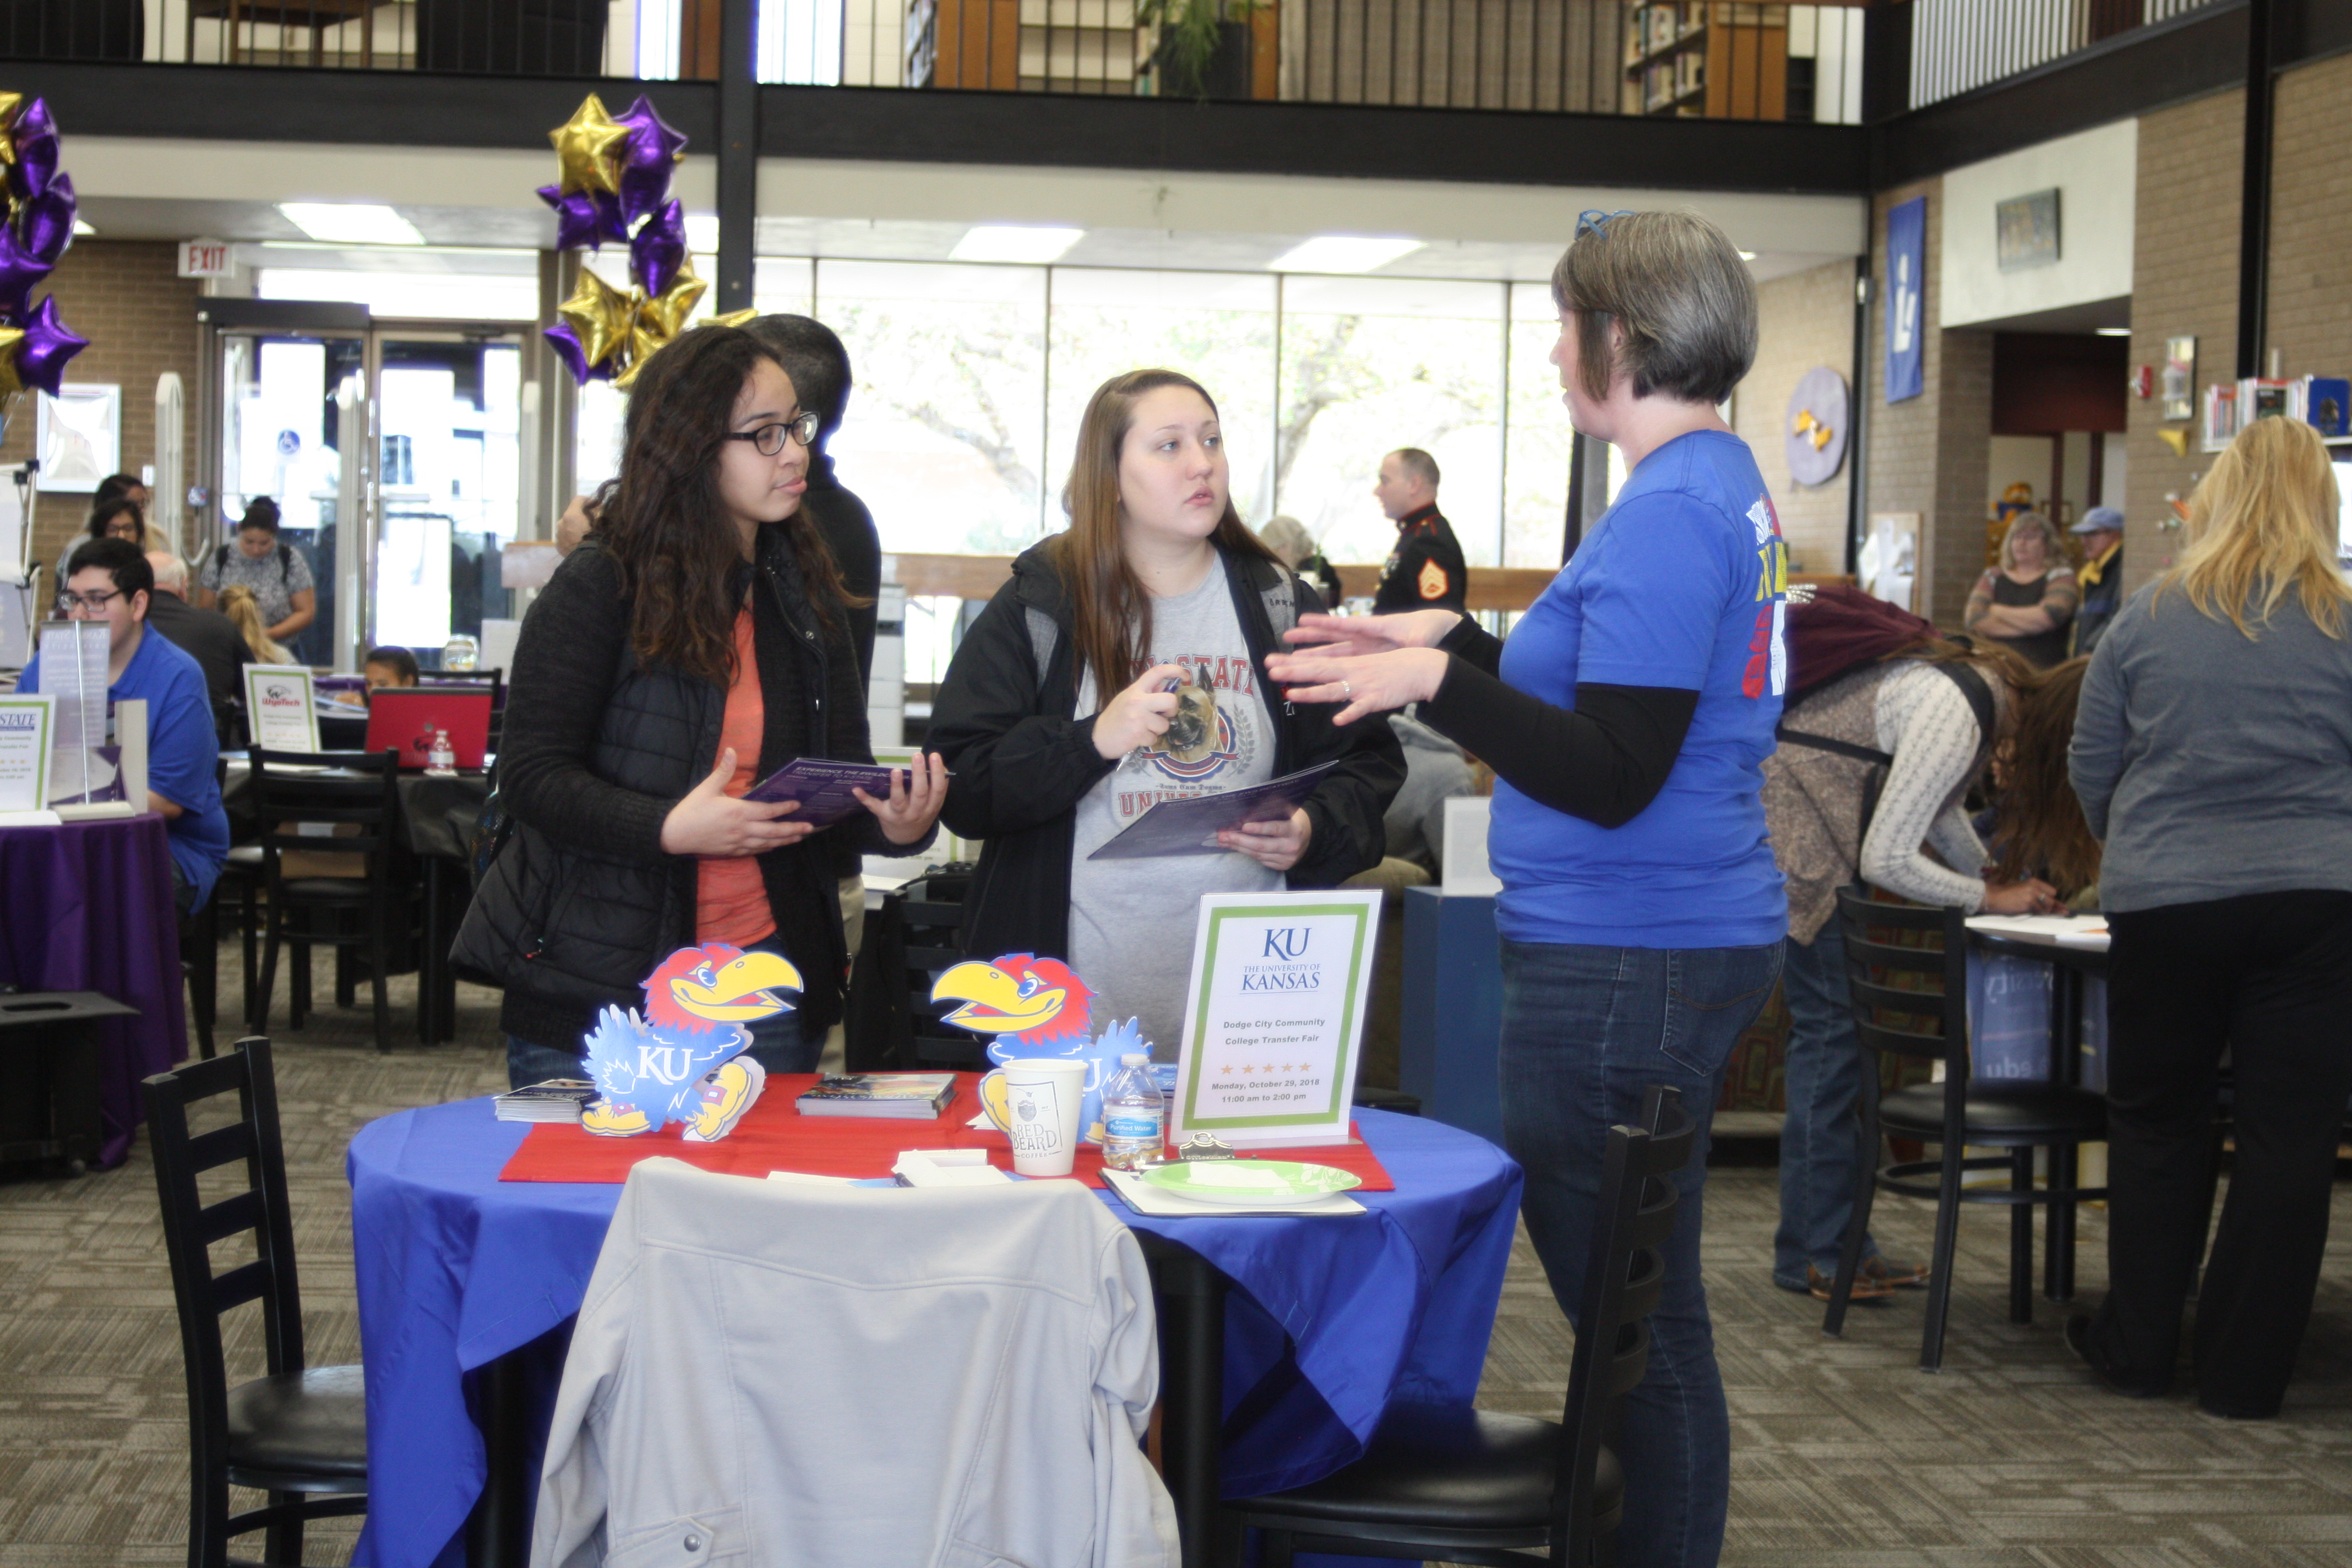 DC3 students meet with a KU representative, one of the 19 colleges from four states present at the transfer fair.